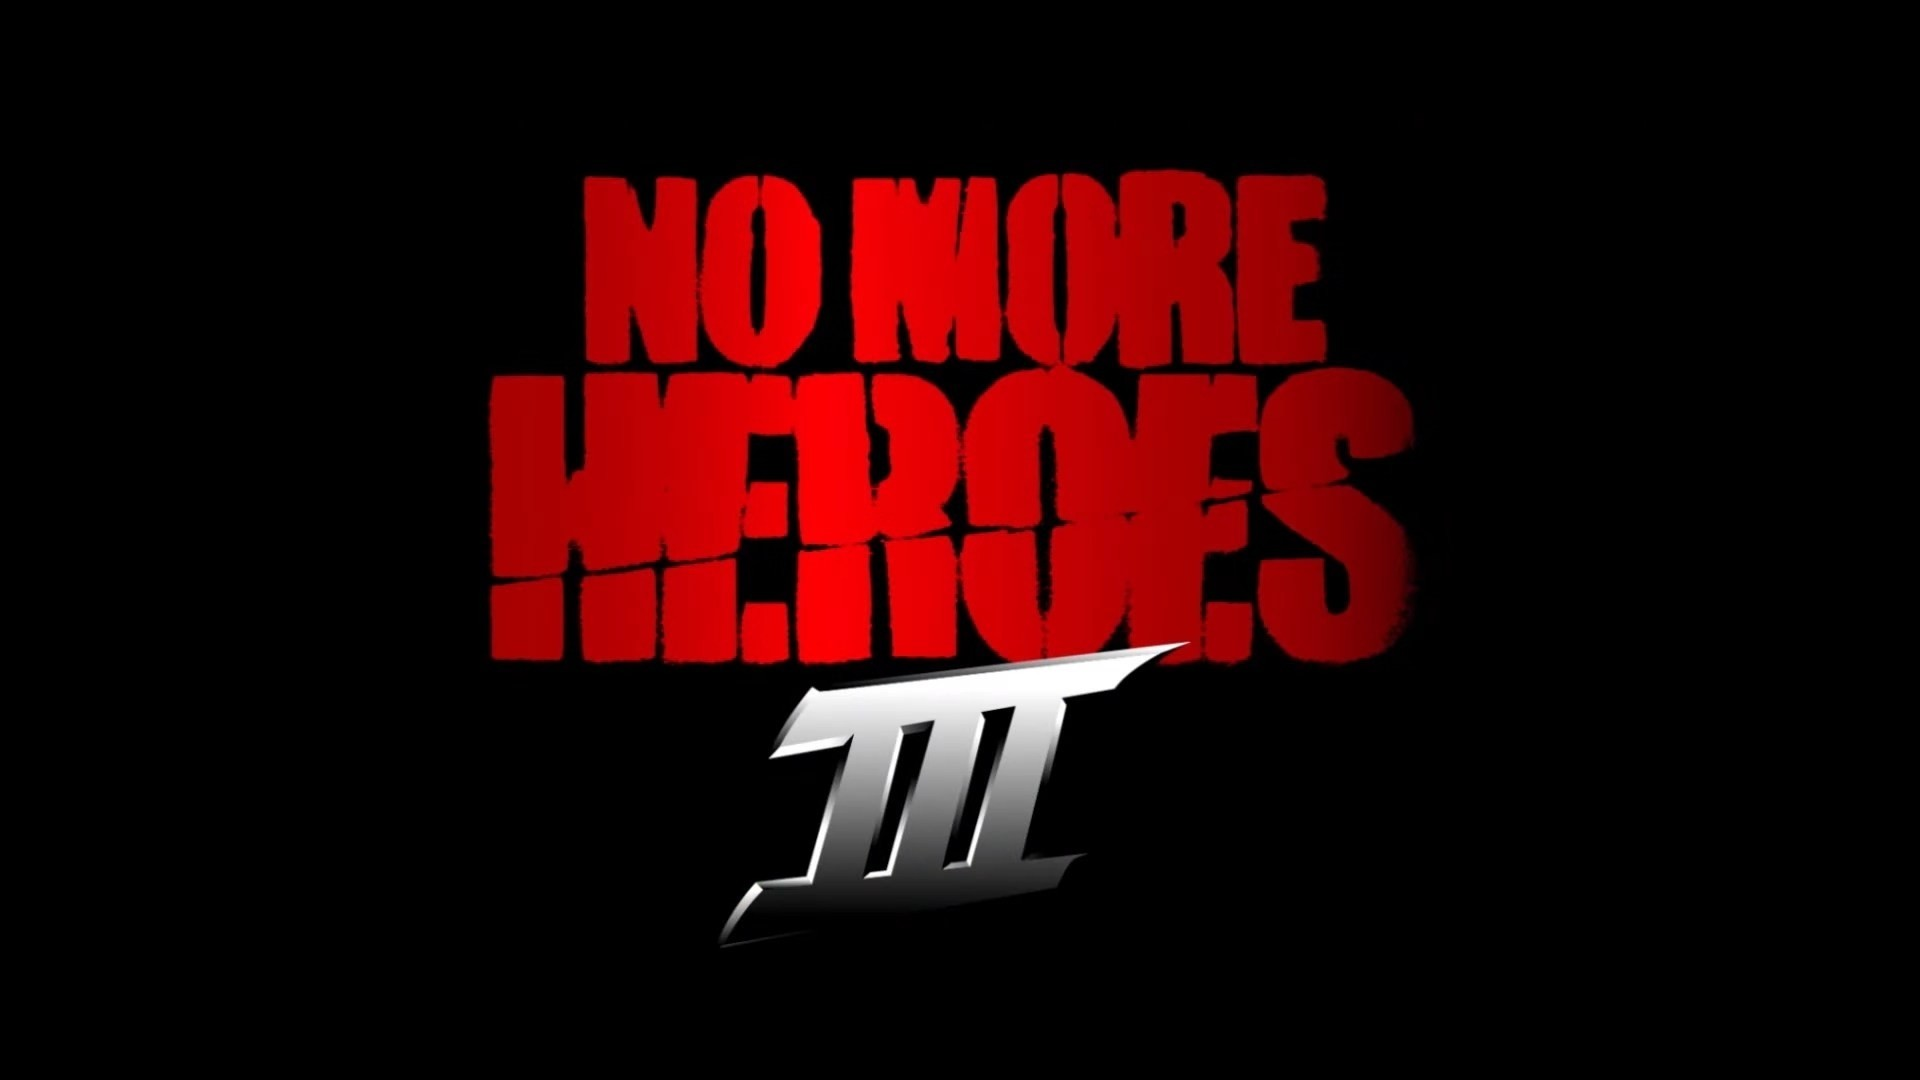 No More Heroes, 2019 Electronic Entertainment Expo, Nintendo Switch, No More Heroes: Heroes' Paradise, Video Games, Nintendo, , , Game, 2020, more heroes, Text, Font, Red, Logo, Graphic design, Graphics, Brand, Animation, Fictional character, Illustration